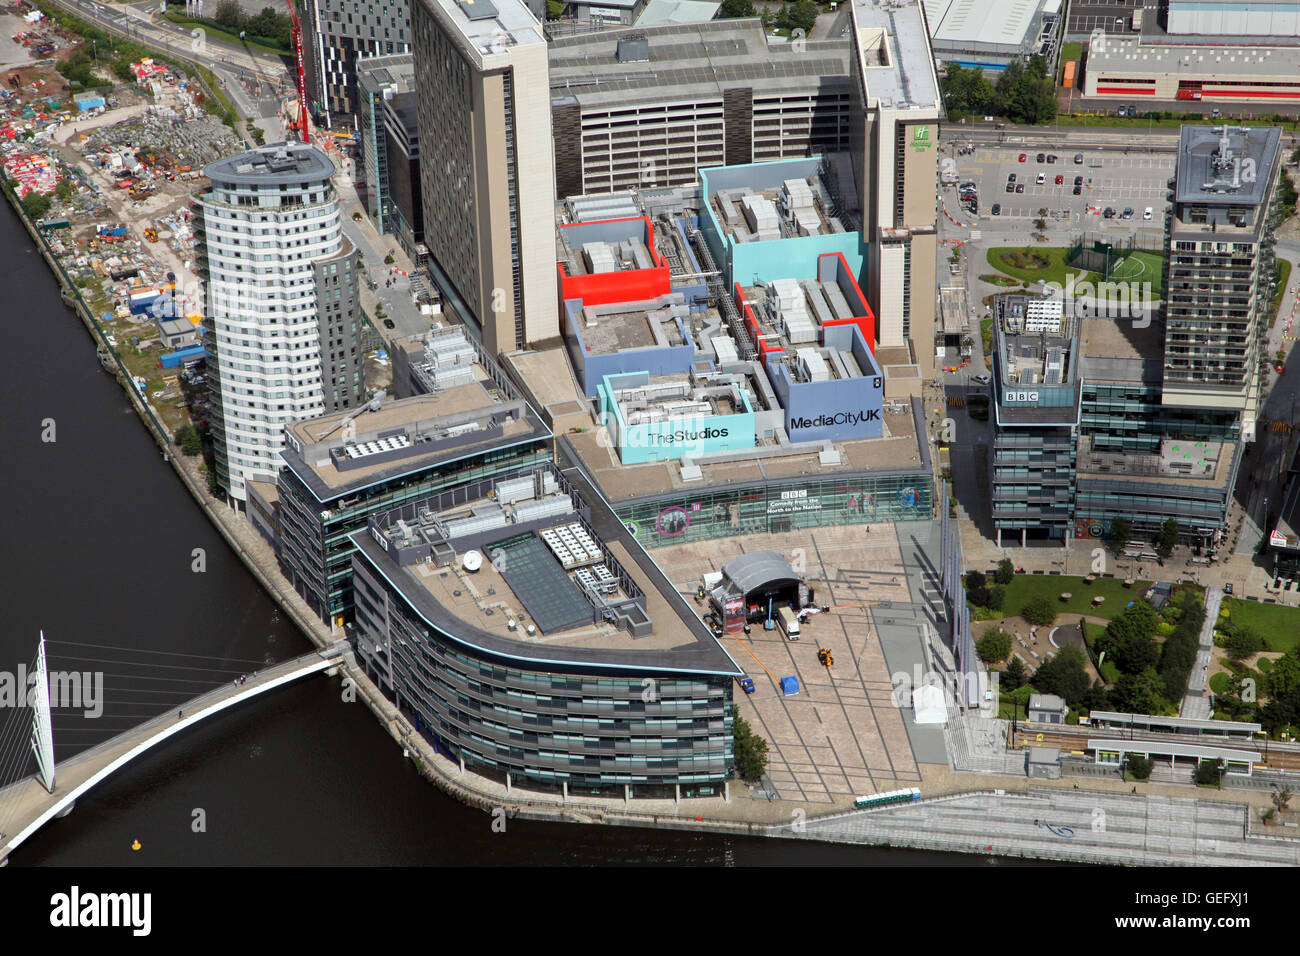 aerial view of the BBC studios in MediaCity, Salford Quays, Manchester, UK - Stock Image